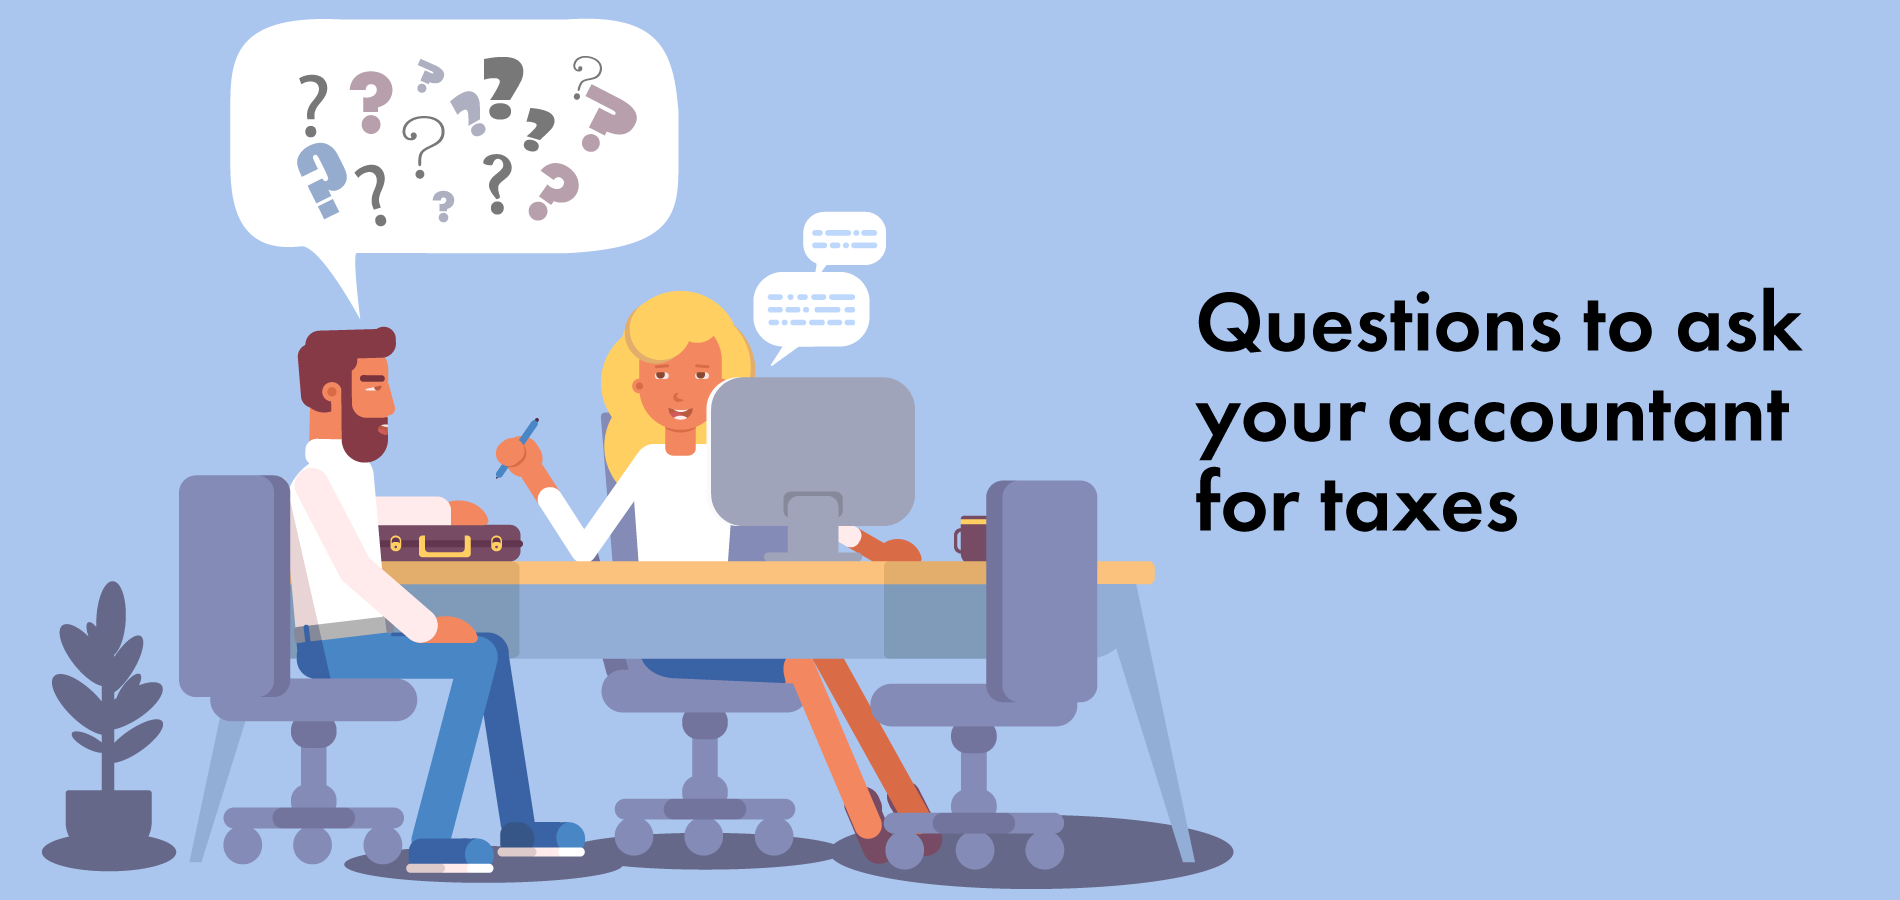 Questions to ask your accoutant for taxes